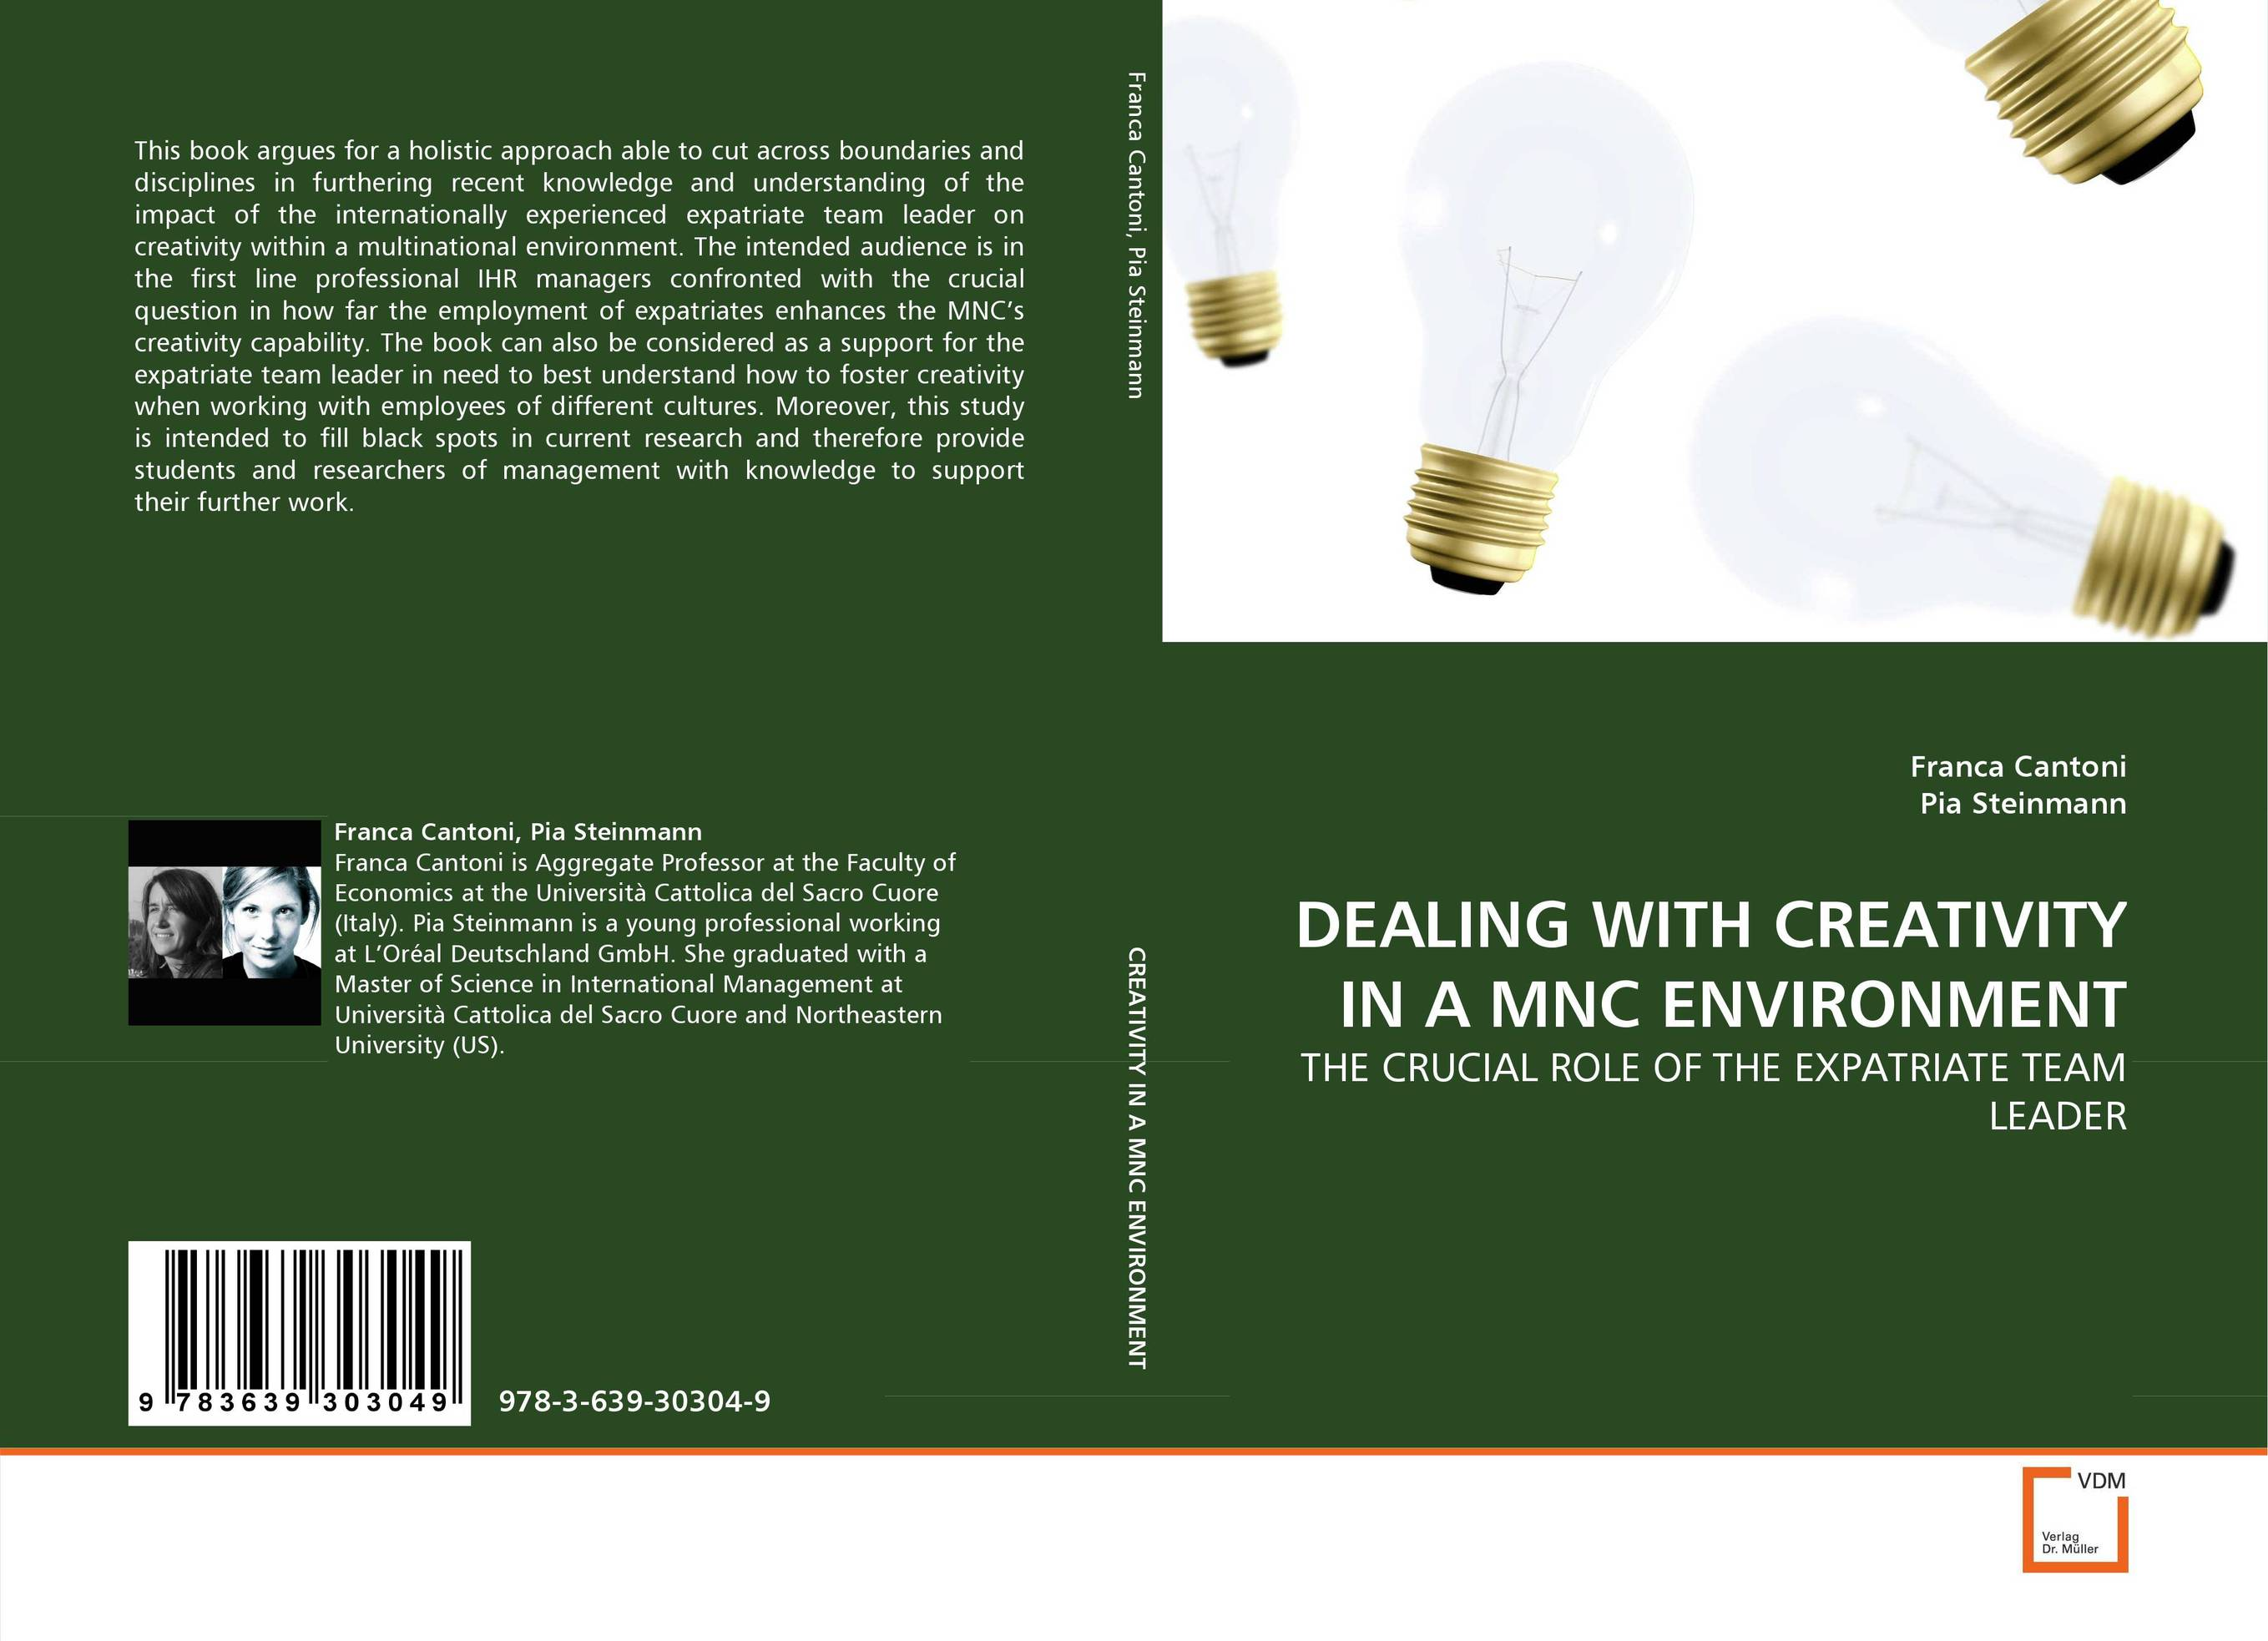 DEALING WITH CREATIVITY IN A MNC ENVIRONMENT